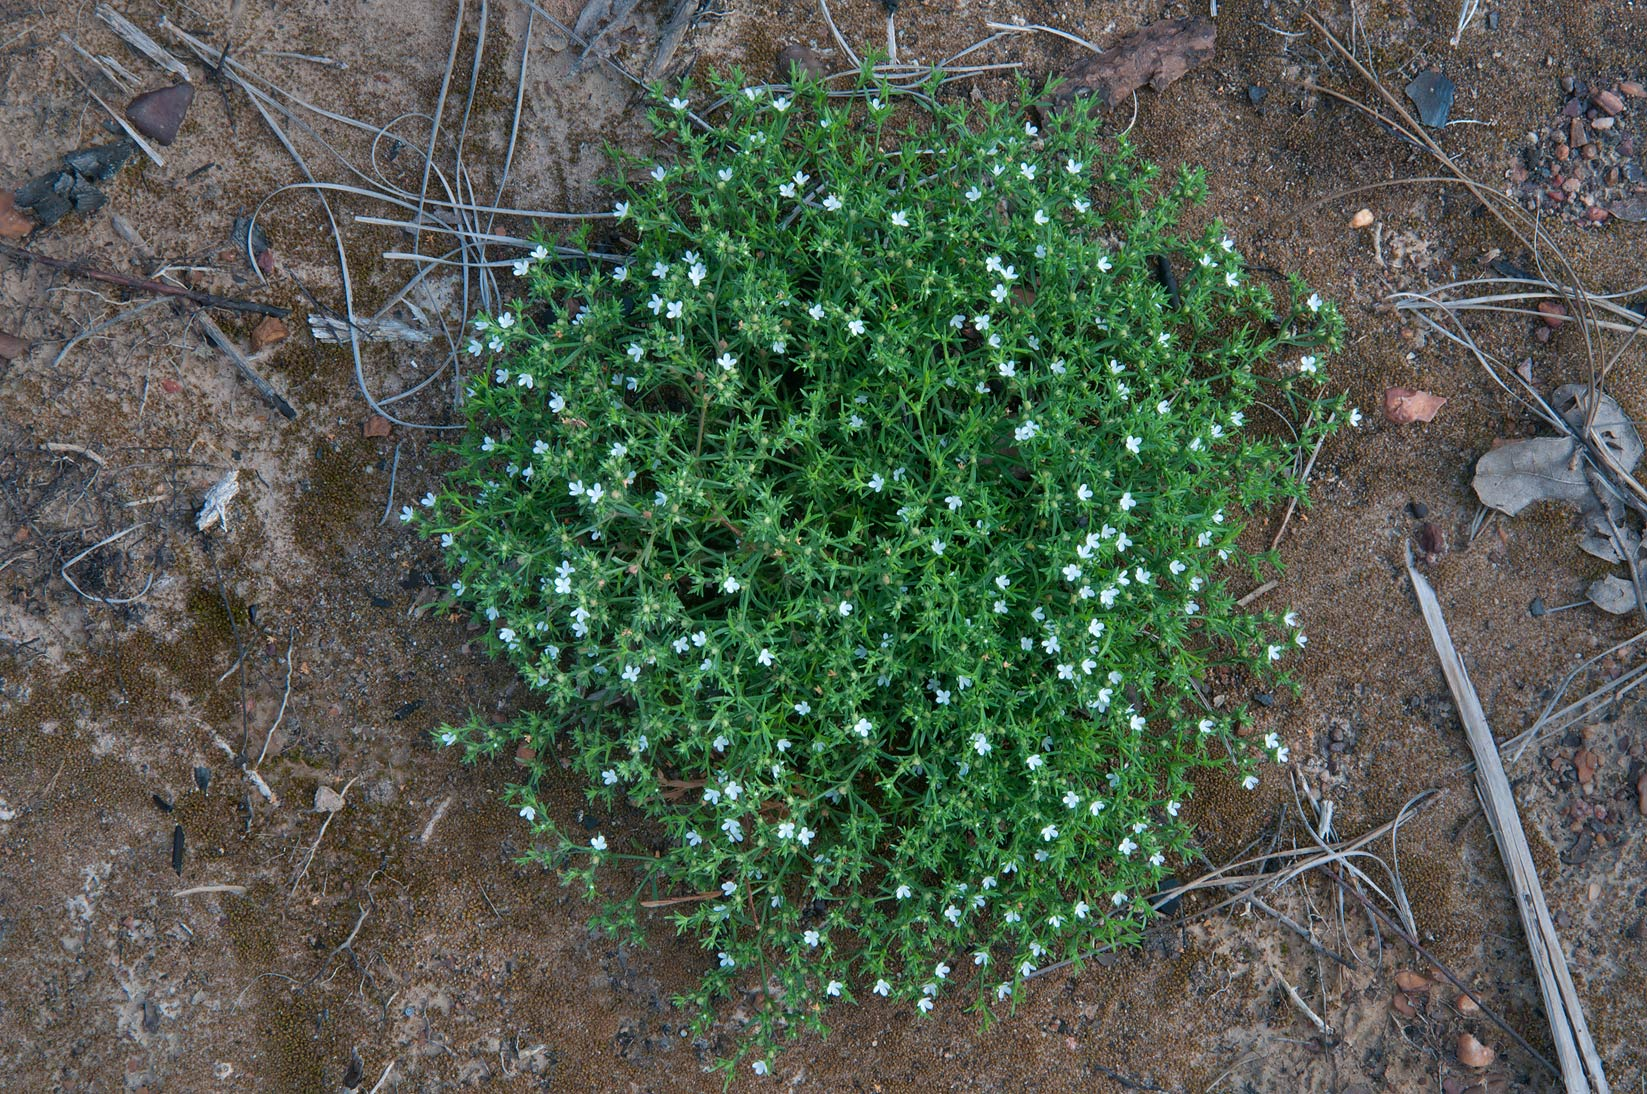 Green carpetweed (Mollugo verticillata) near Lost...in Bastrop State Park. Bastrop, Texas